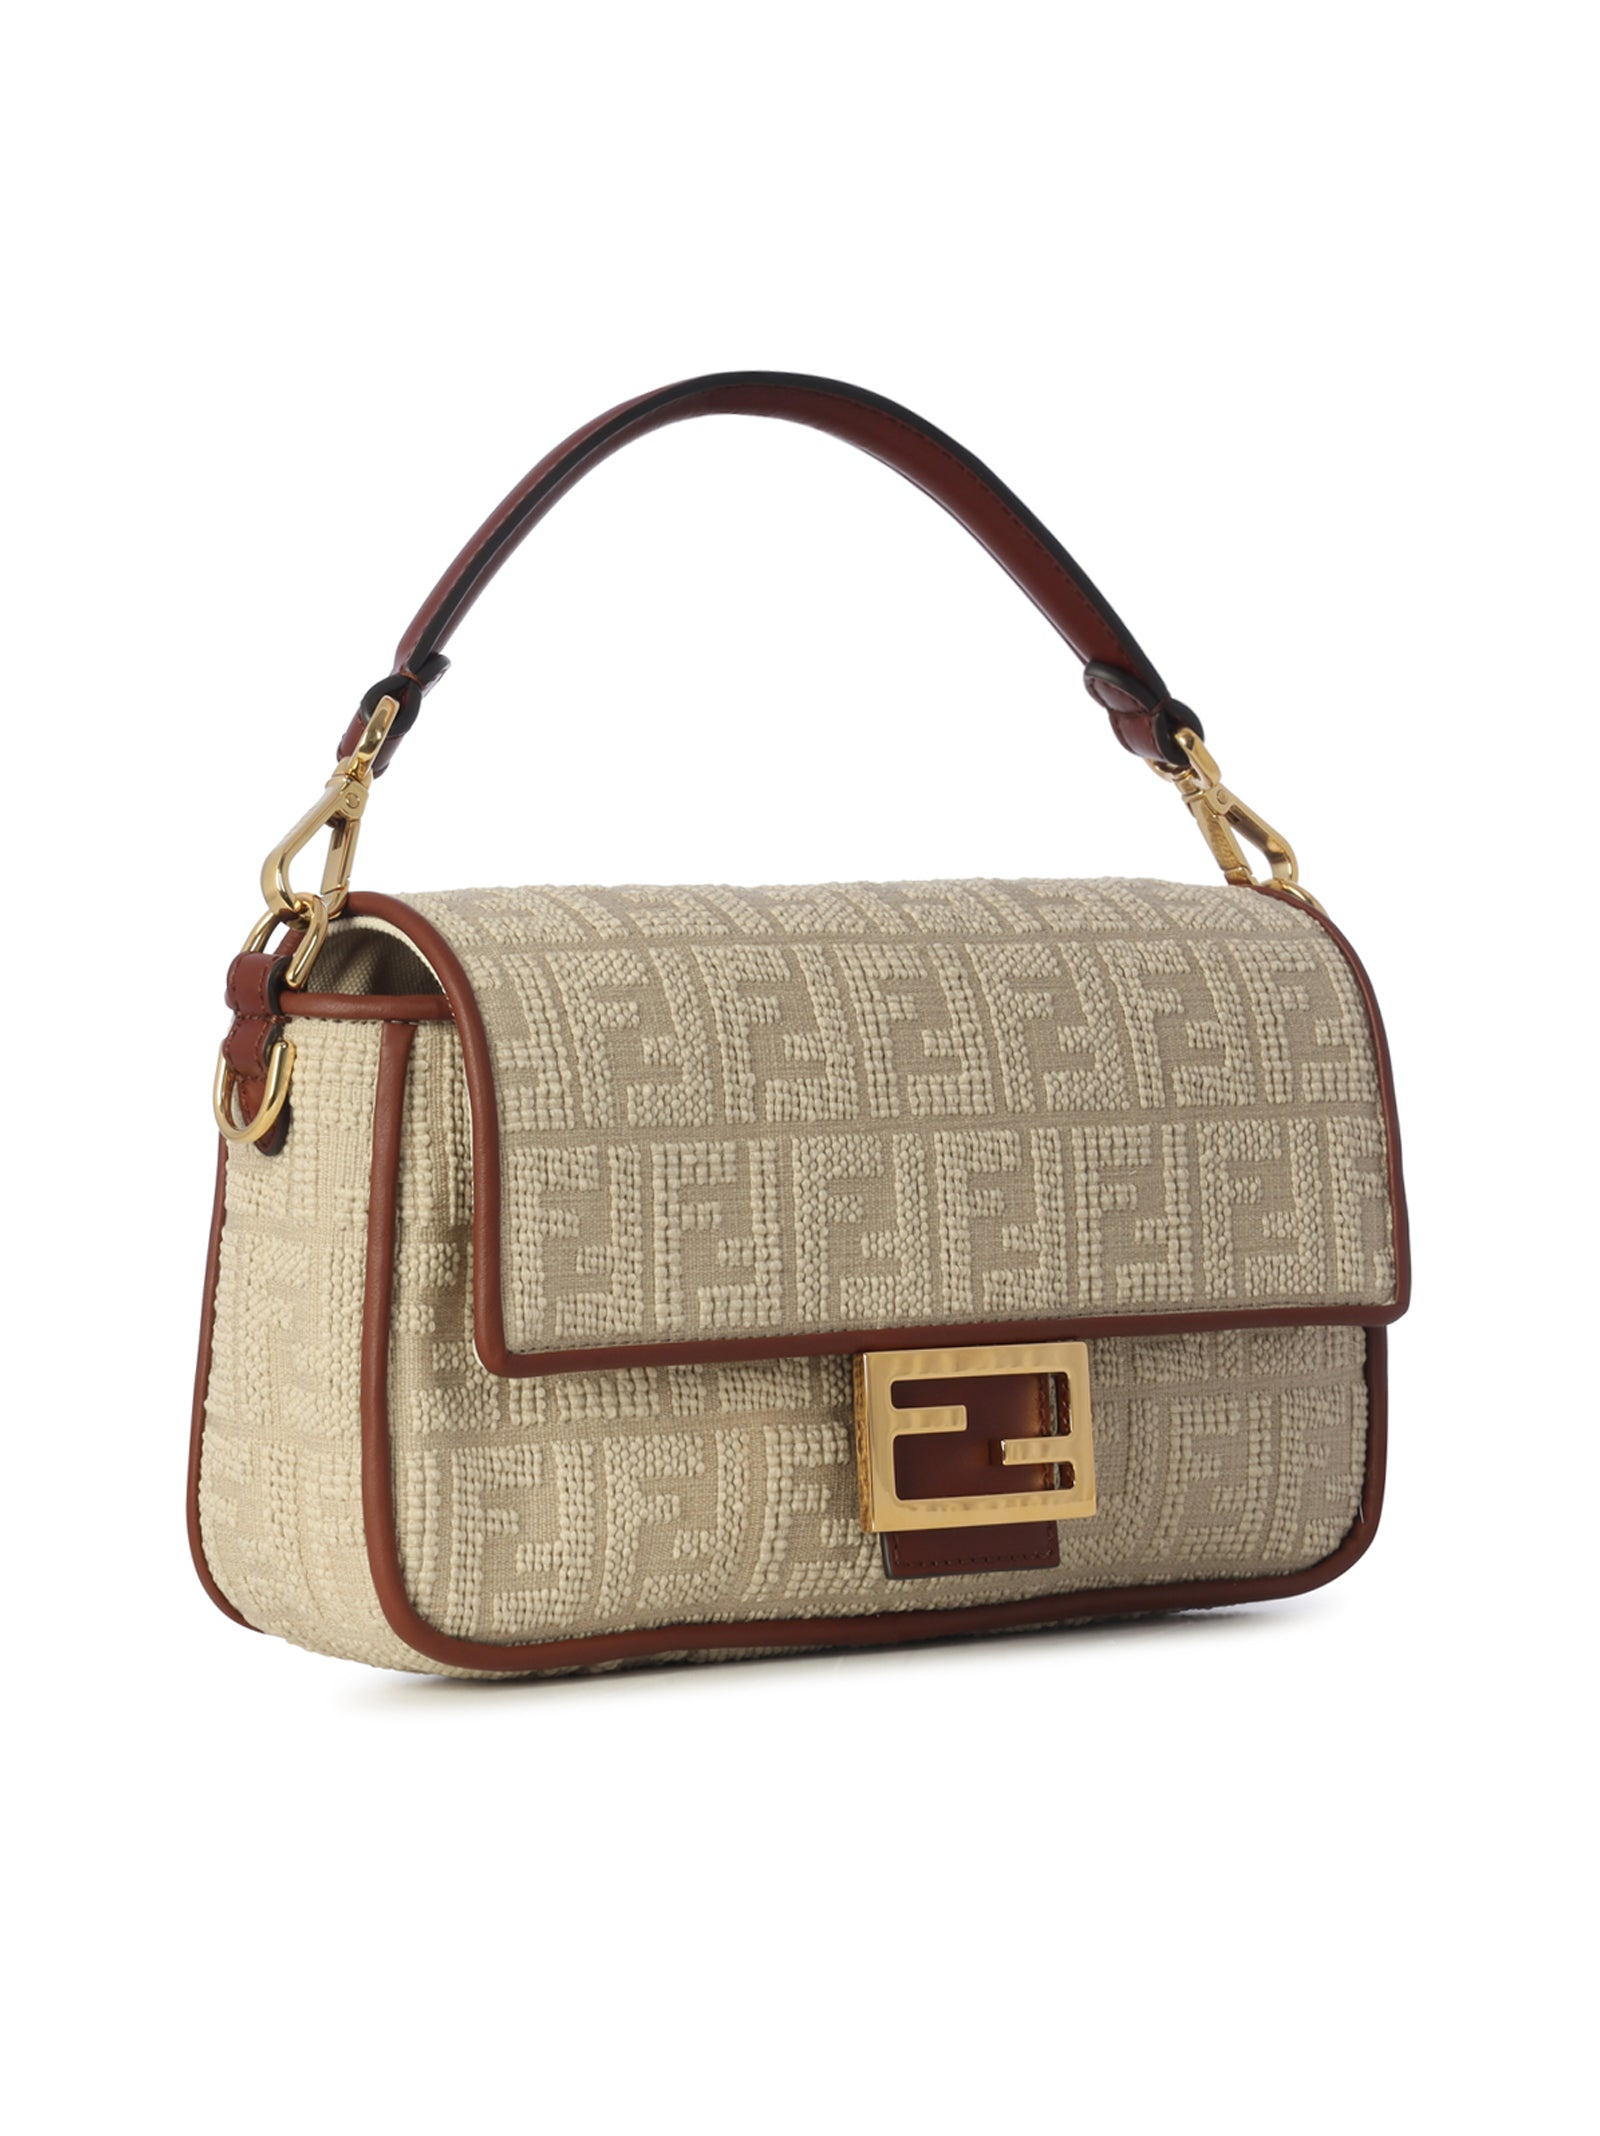 Beige terry baguette bag